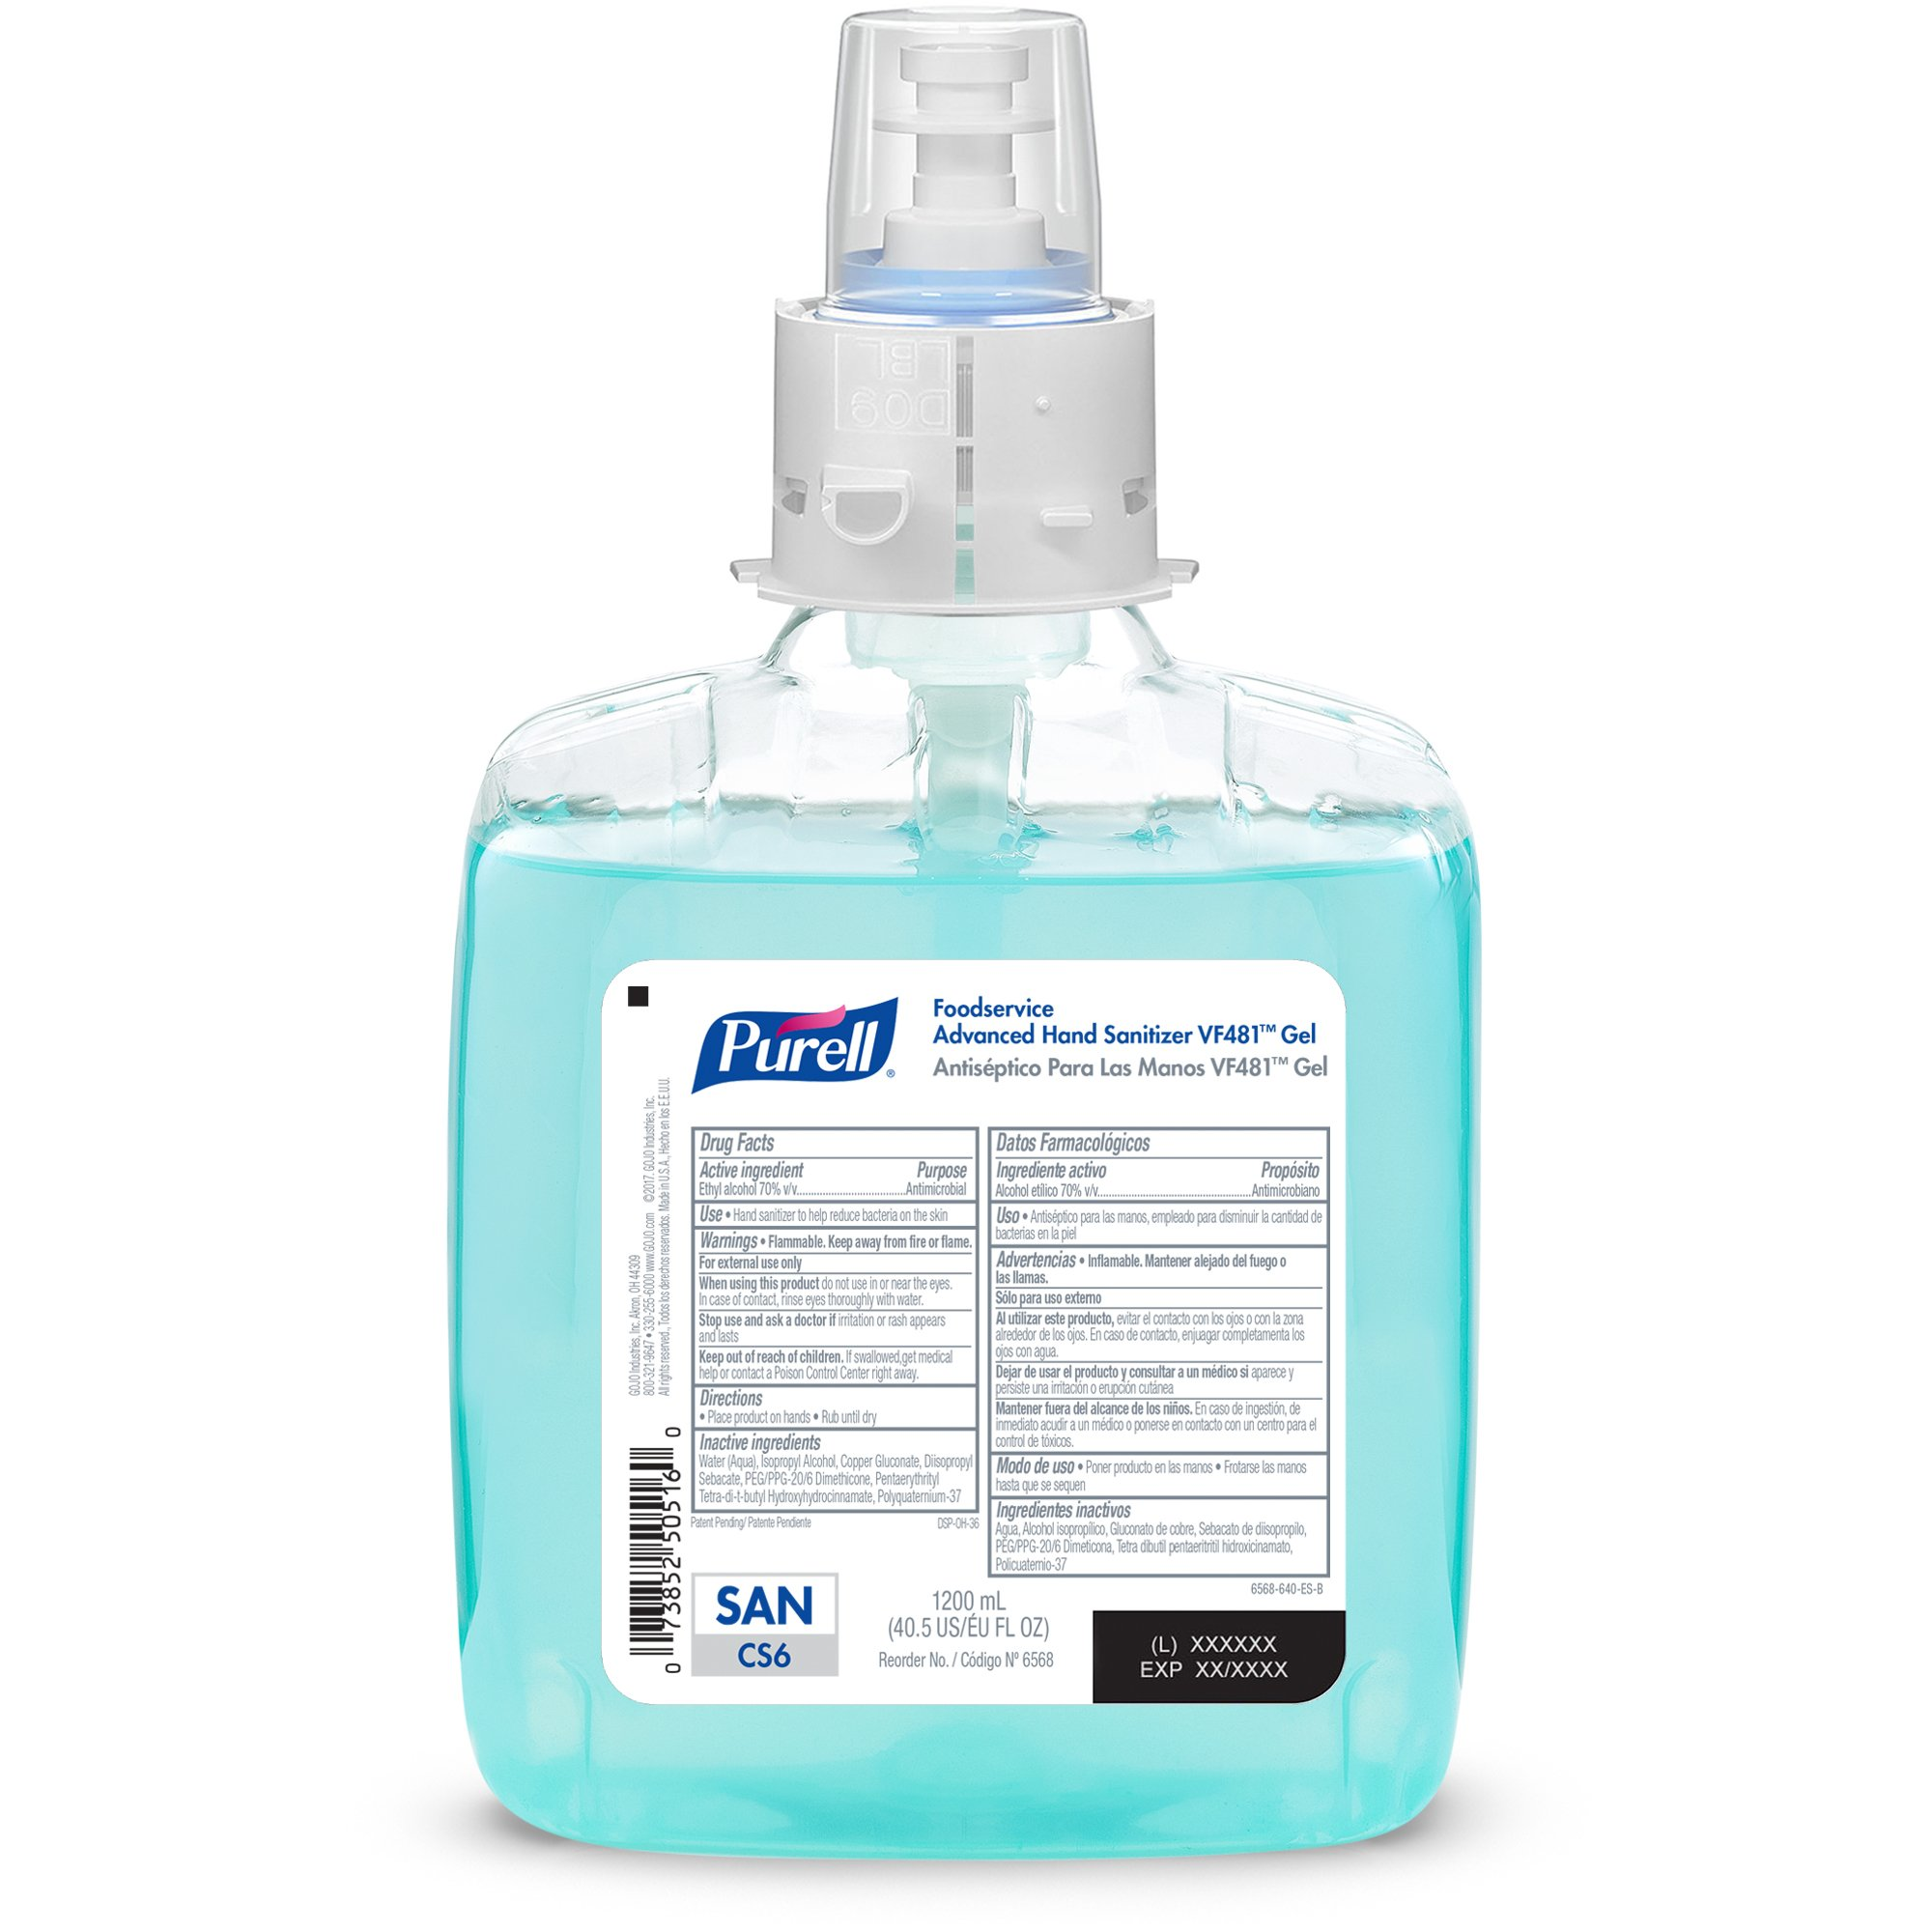 PURELL CS6 Foodservice Advanced Hand Sanitizer VF481 Gel, Fragrance Free, 1200 mL Sanitizer Refill for PURELL CS6 Touch-Free Dispenser (Pack of 2) - 6568-02